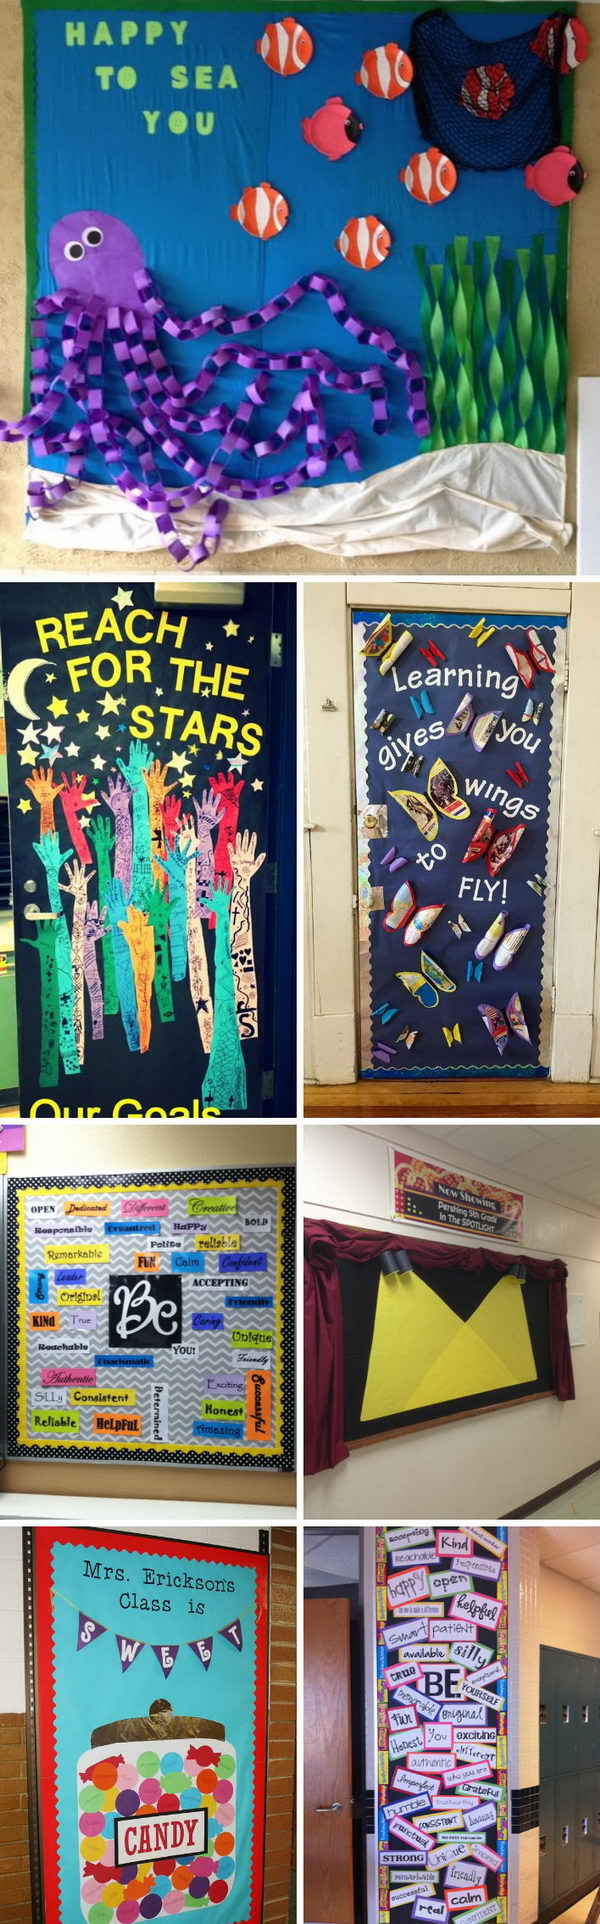 Classroom Notice Board Ideas ~ Creative bulletin board ideas for classroom decoration